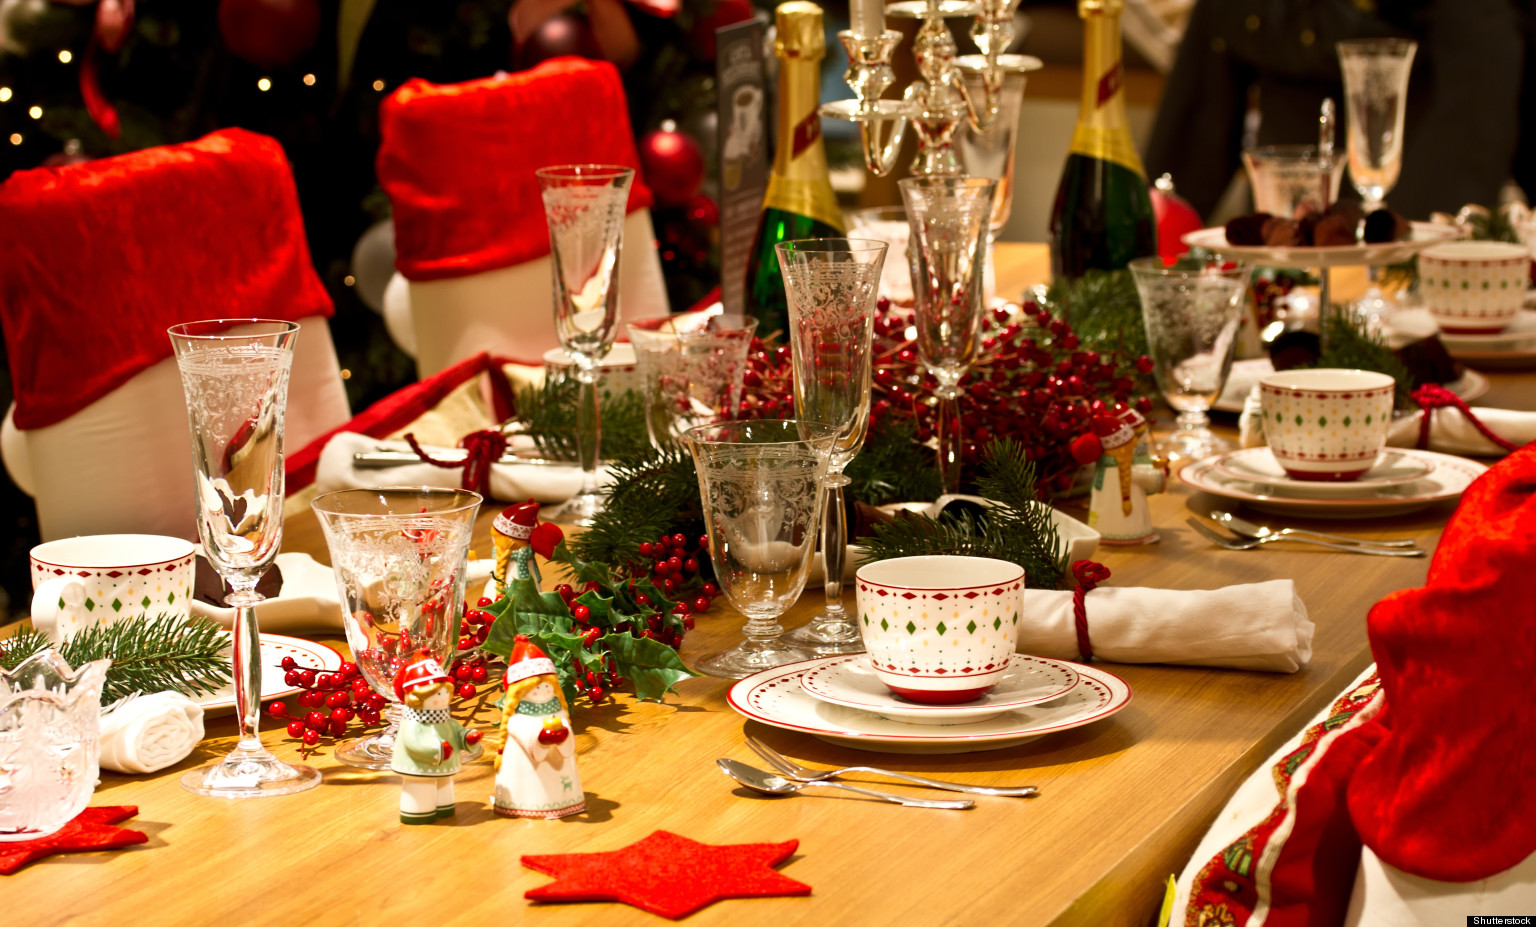 What Restaurants Are Open On Christmas? | HuffPost